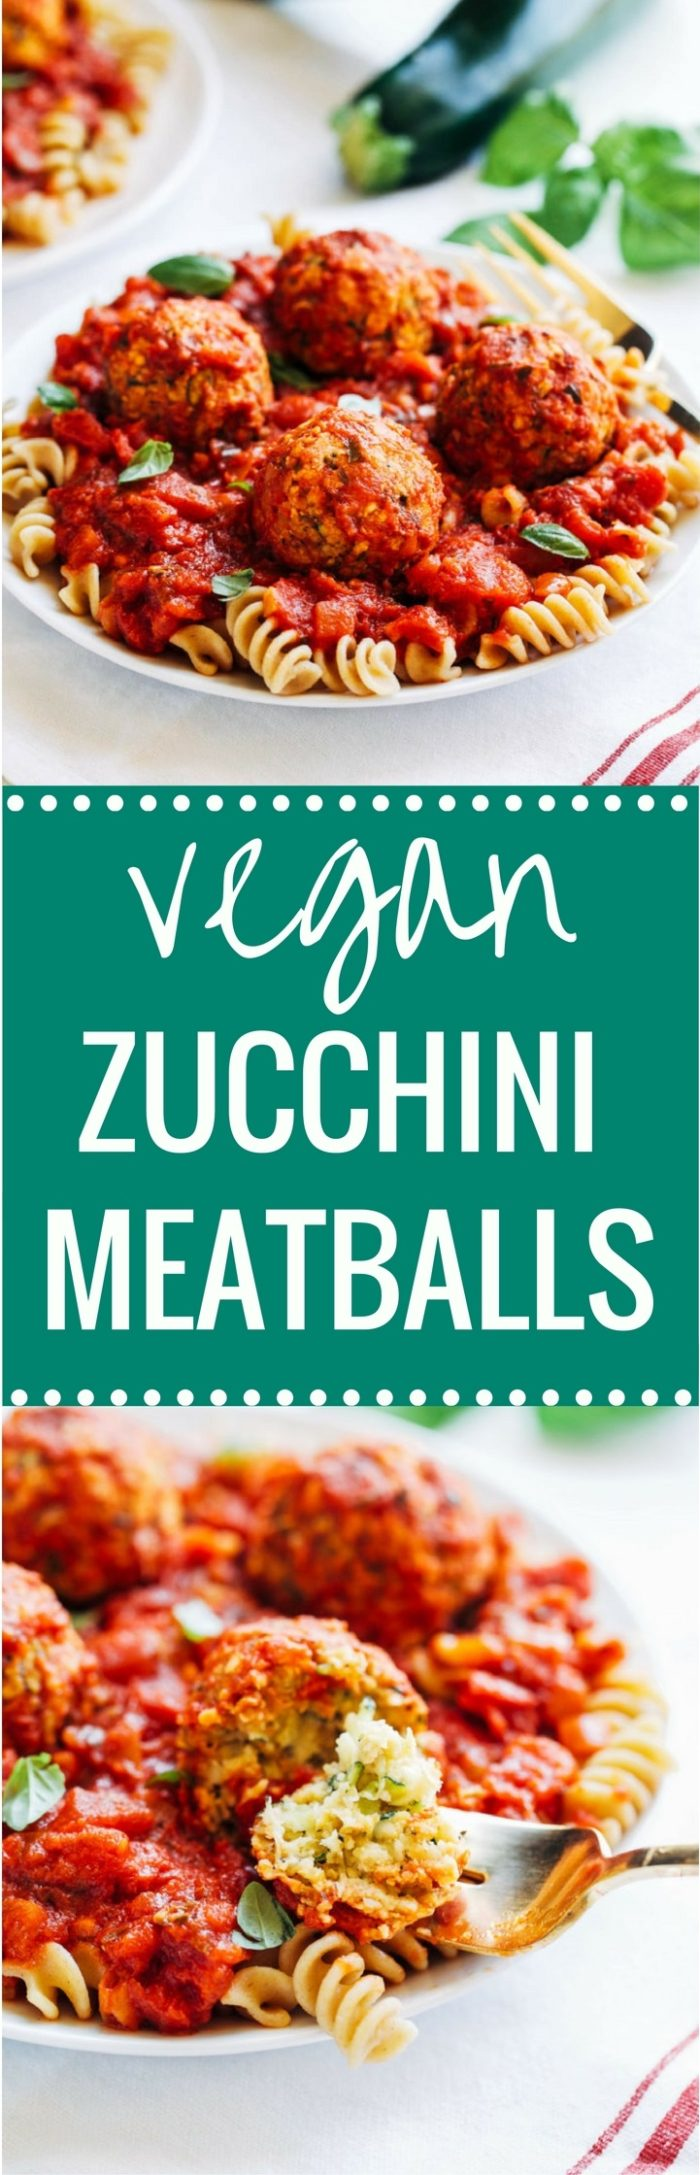 Vegan Zucchini 'Meatballs' - less than 10 ingredients and 20 minutes to make! Each serving offers 25 grams of plant-based protein! (vegan + gluten-free)